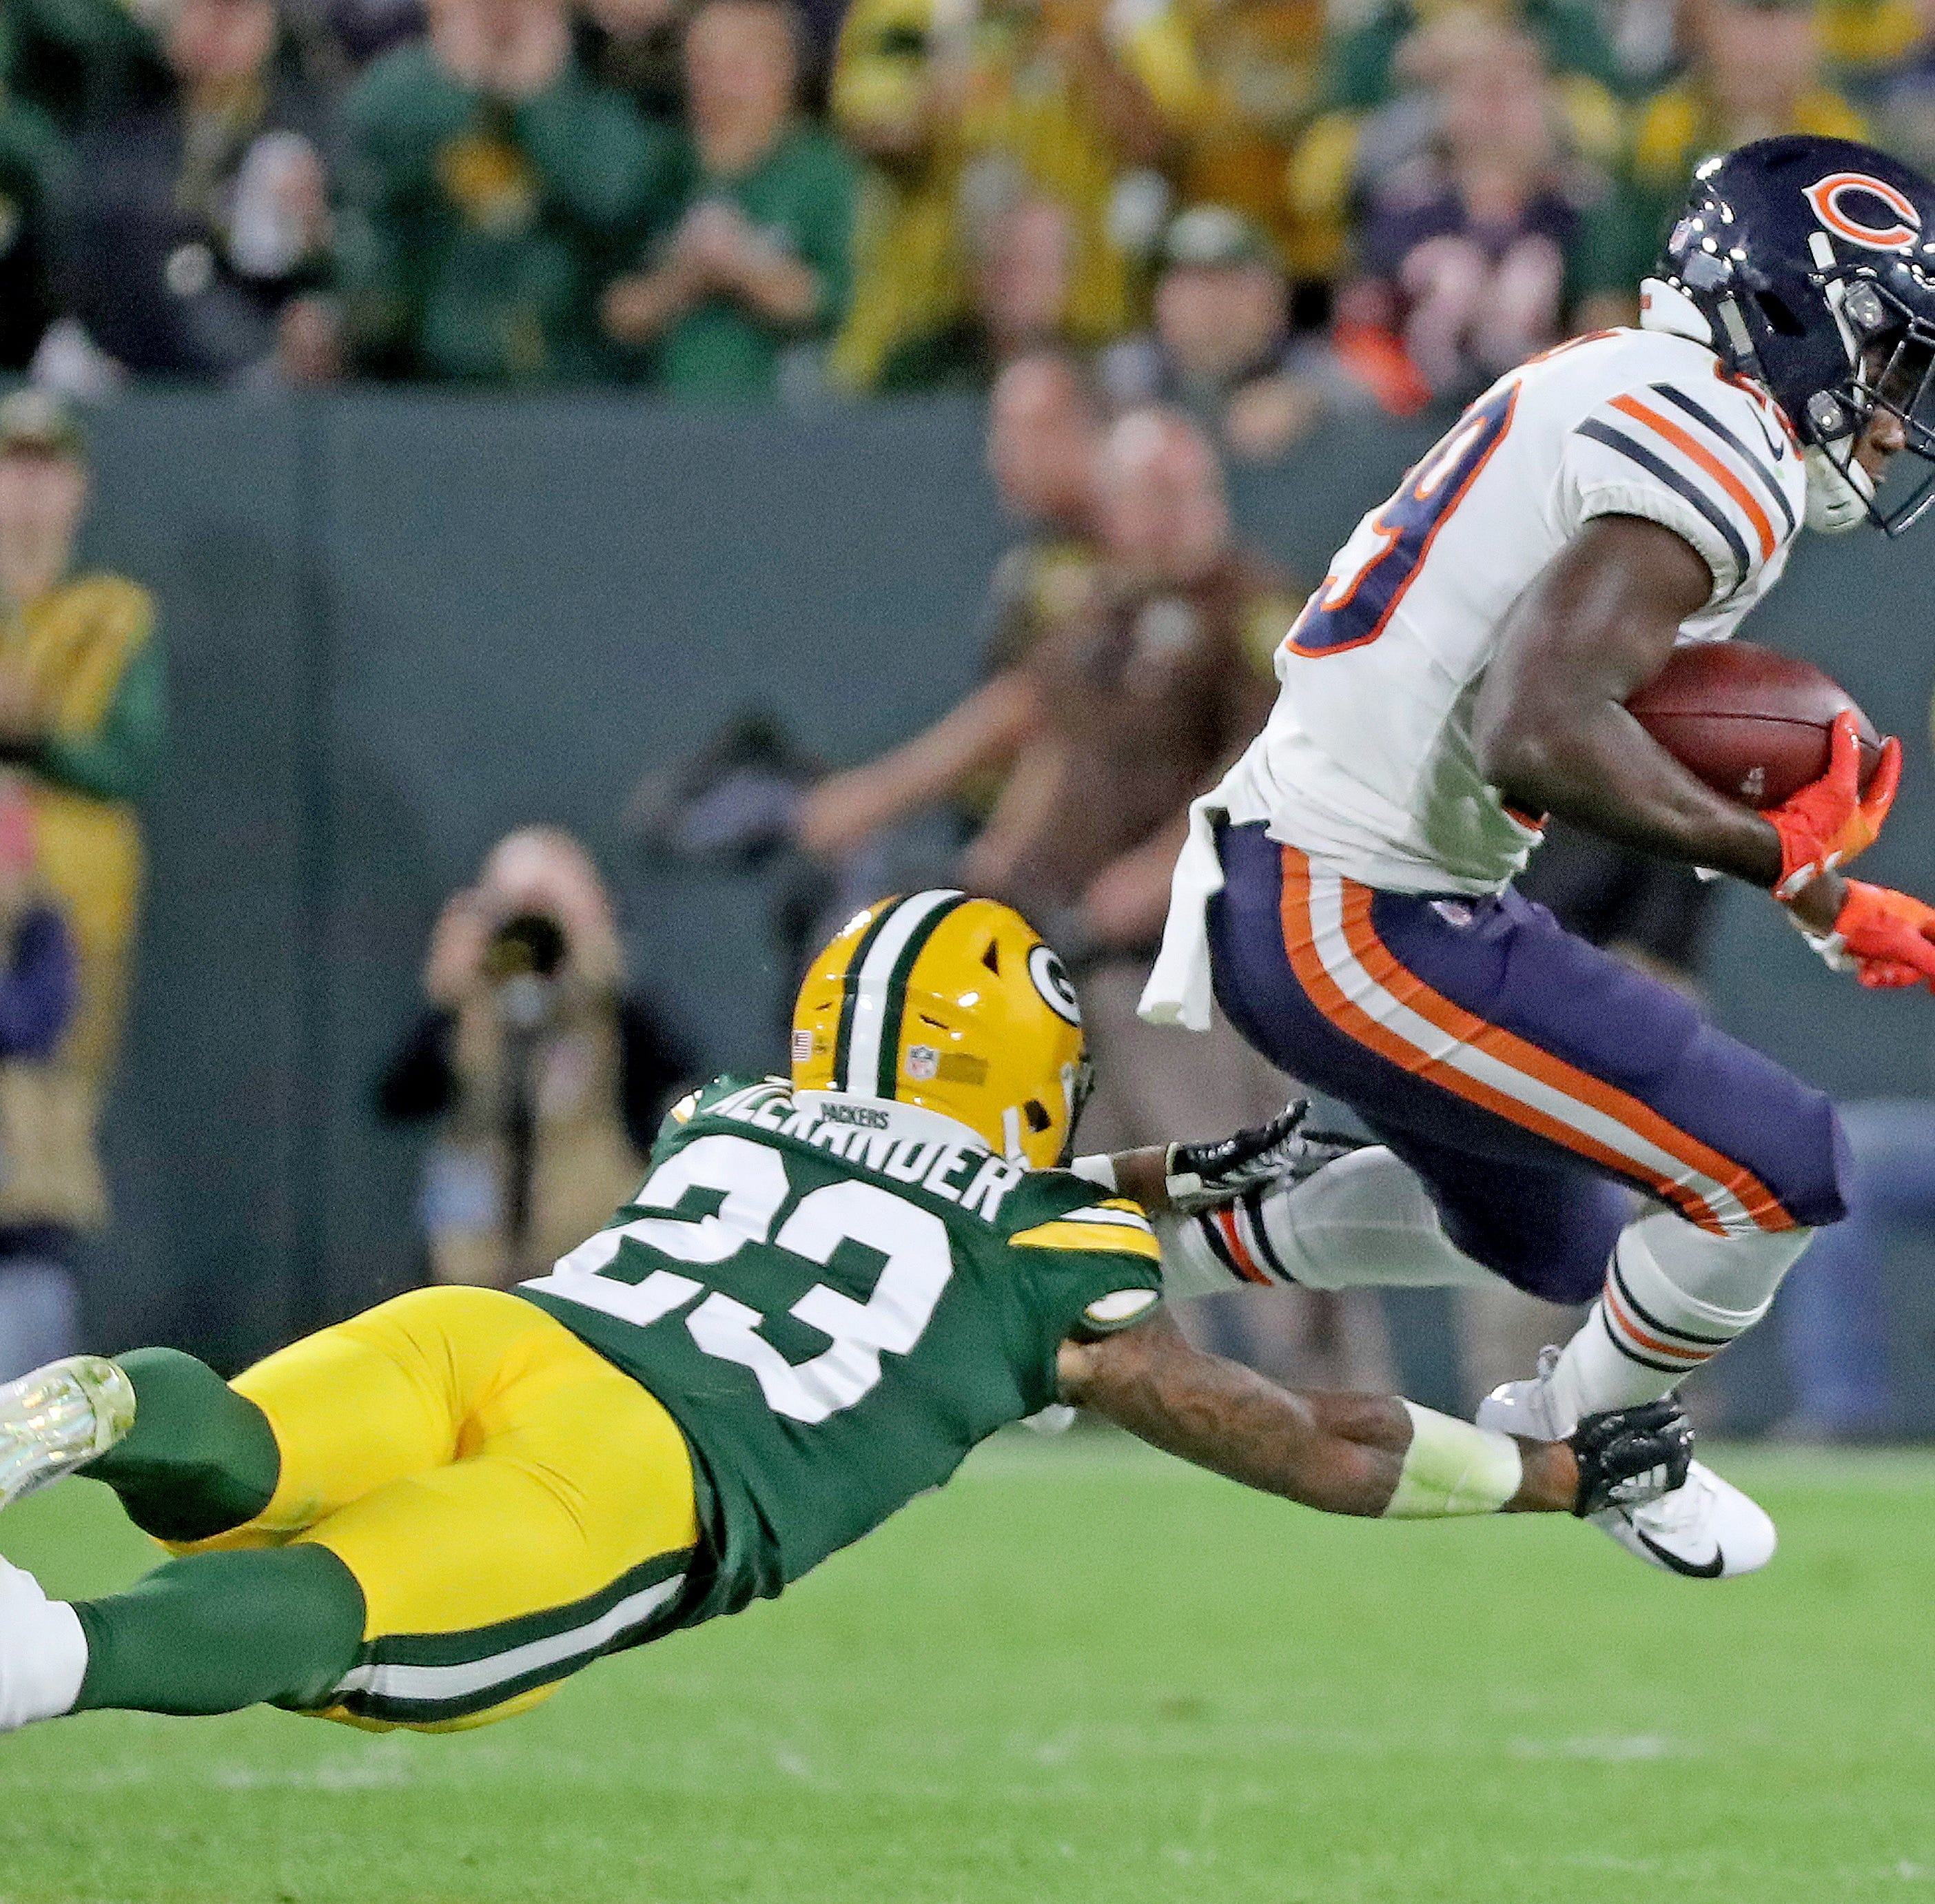 Interest in Packers-Bears remains high, but Detroit tickets will go cheap